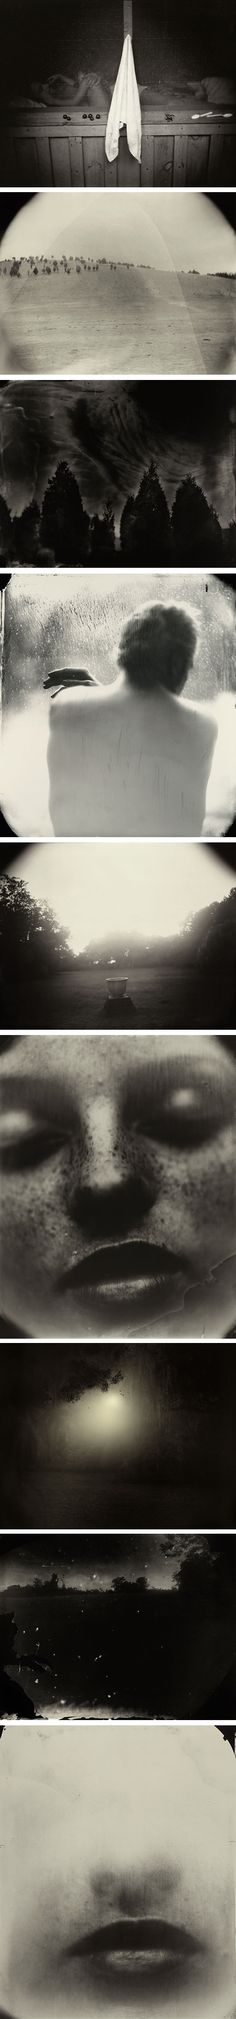 **All images are from sallymann.com